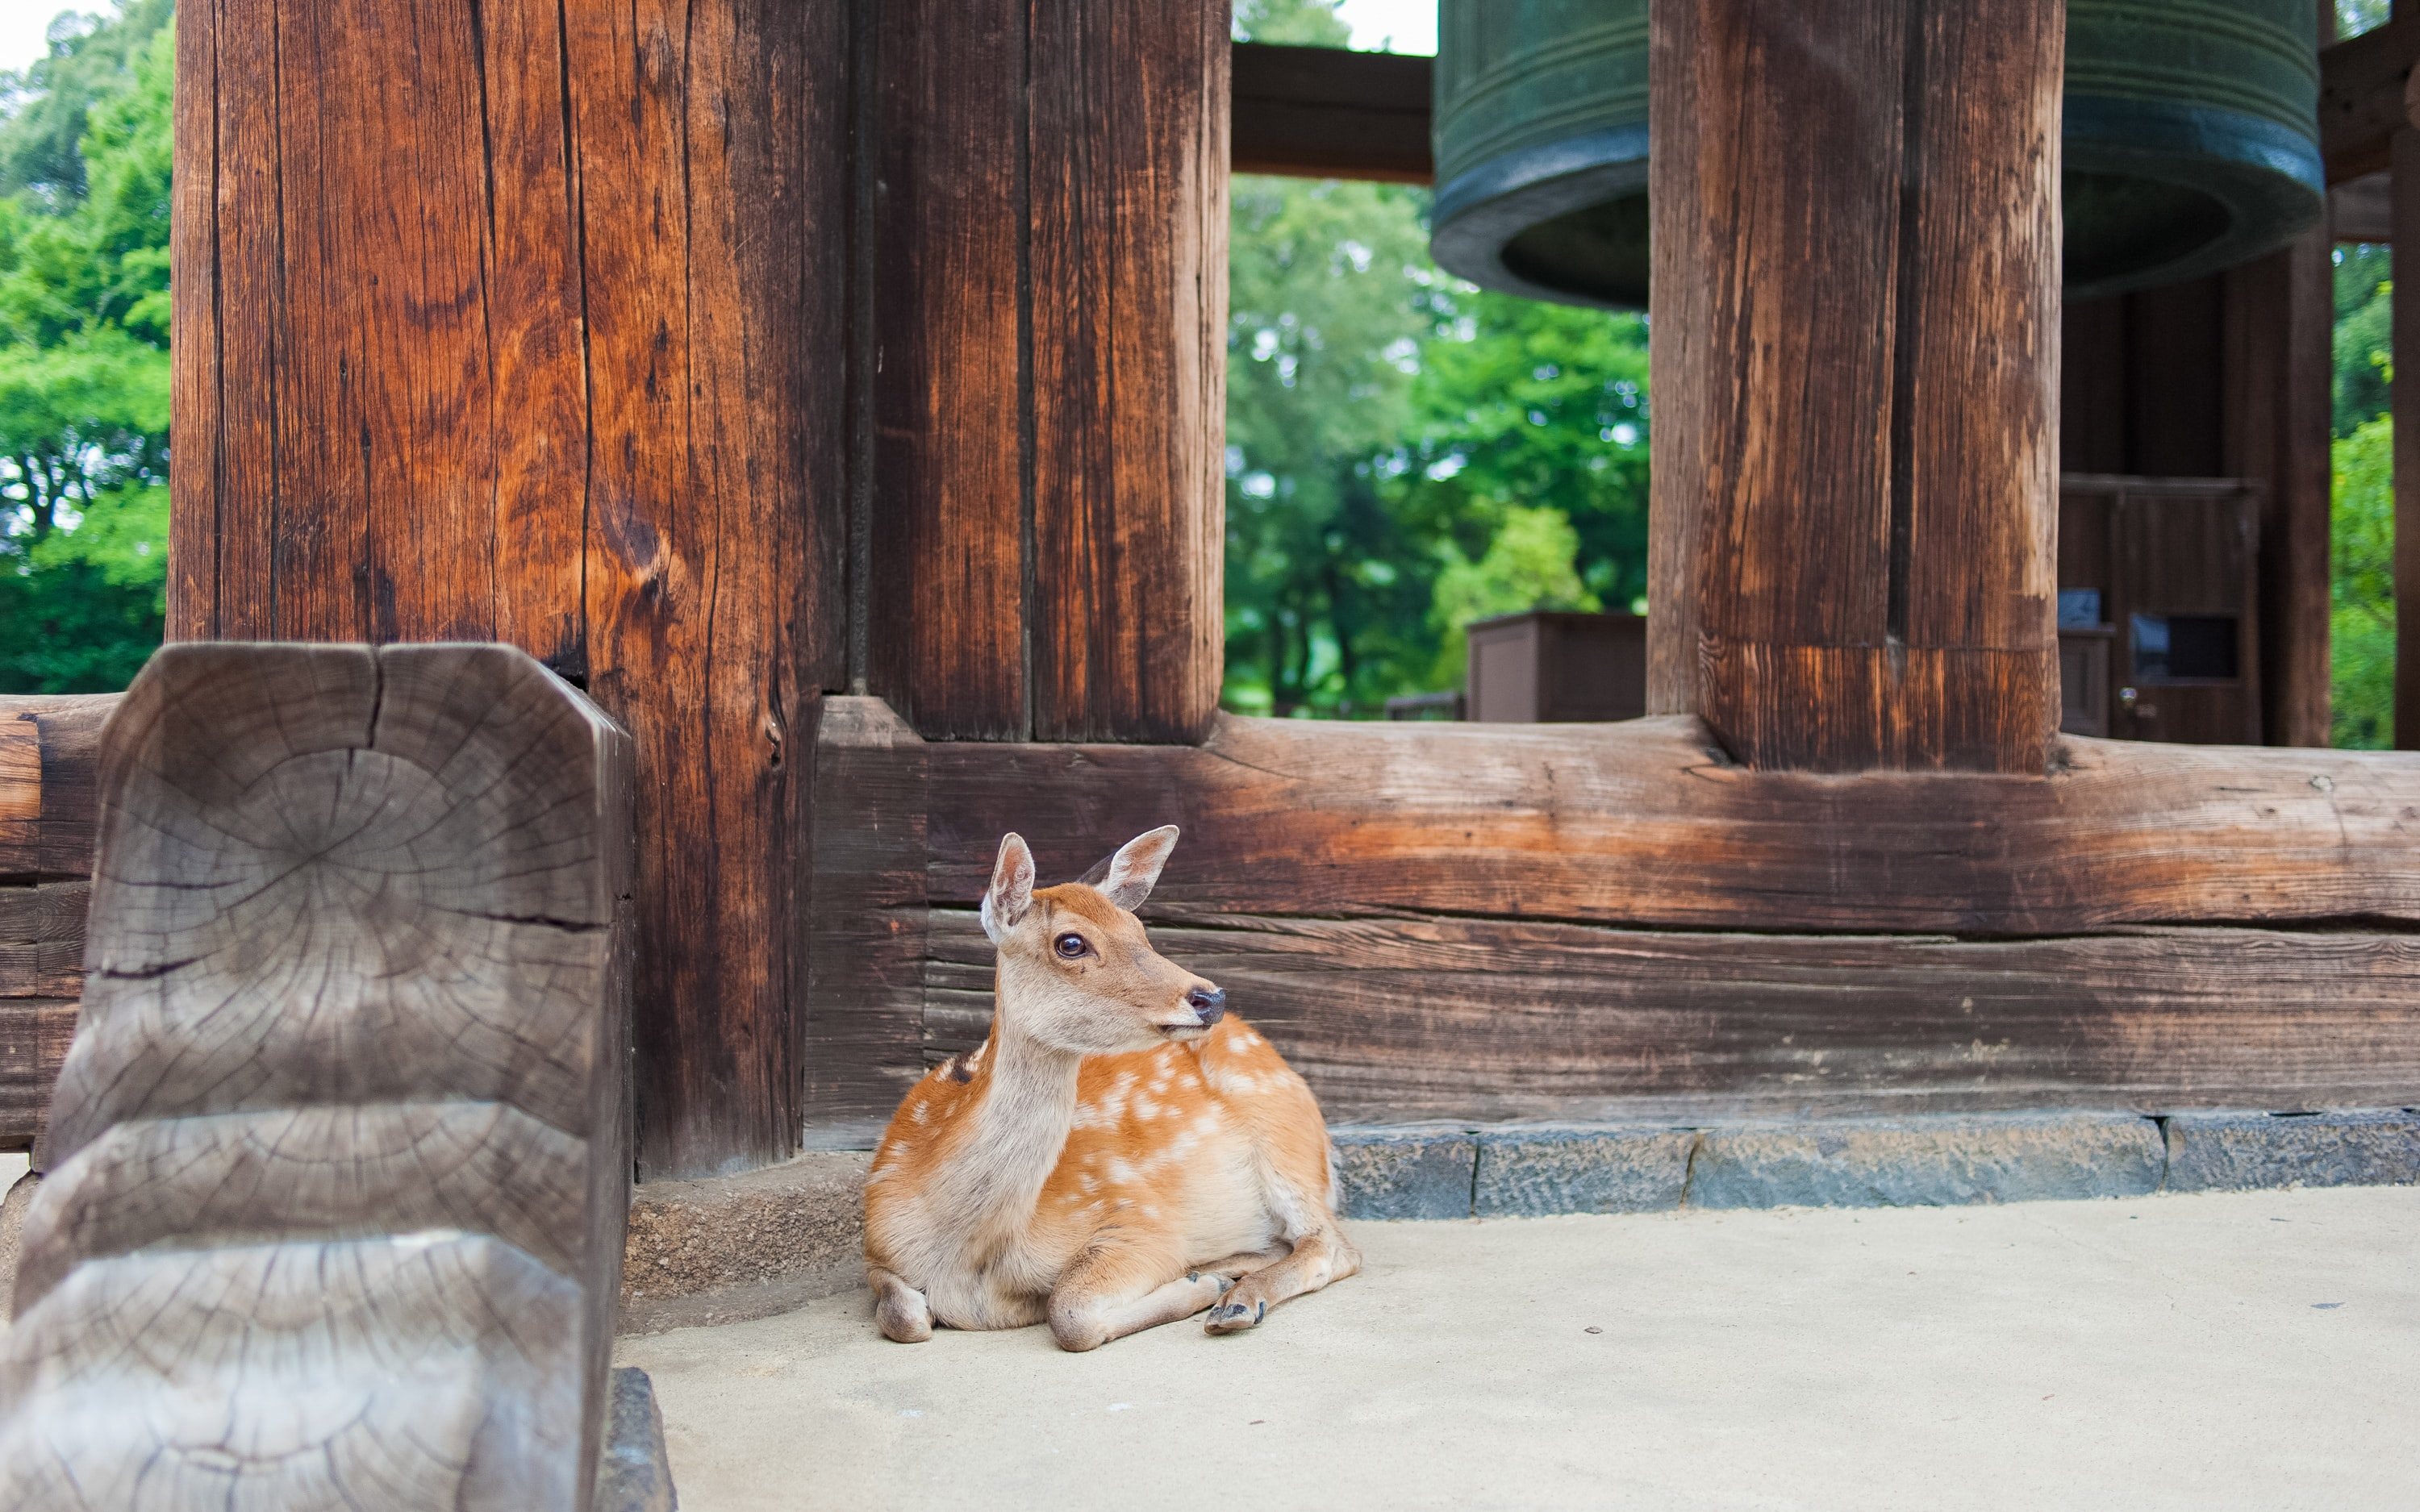 Deer laying on stone floor in front of wooden posts